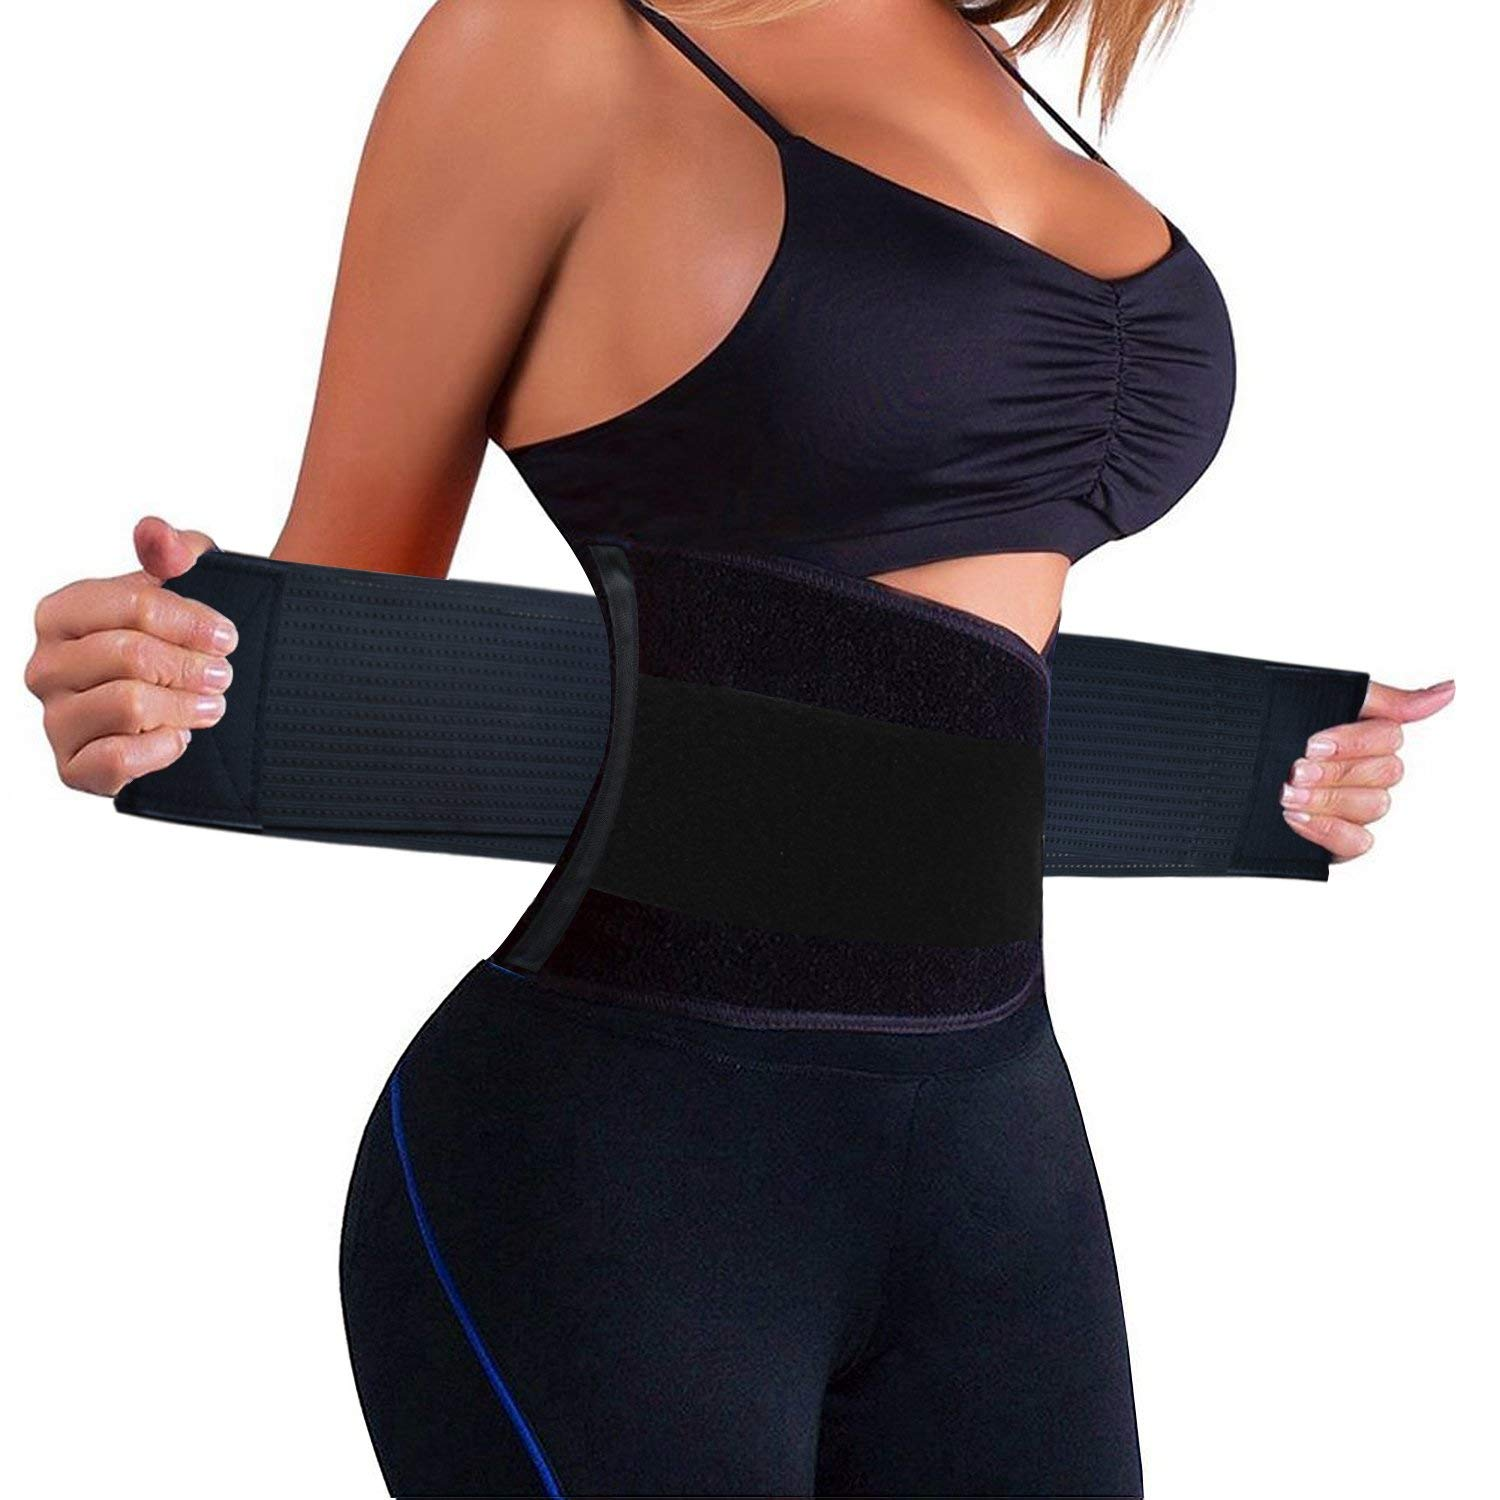 . KOOCHY Women's Waist Trainer Trimmer